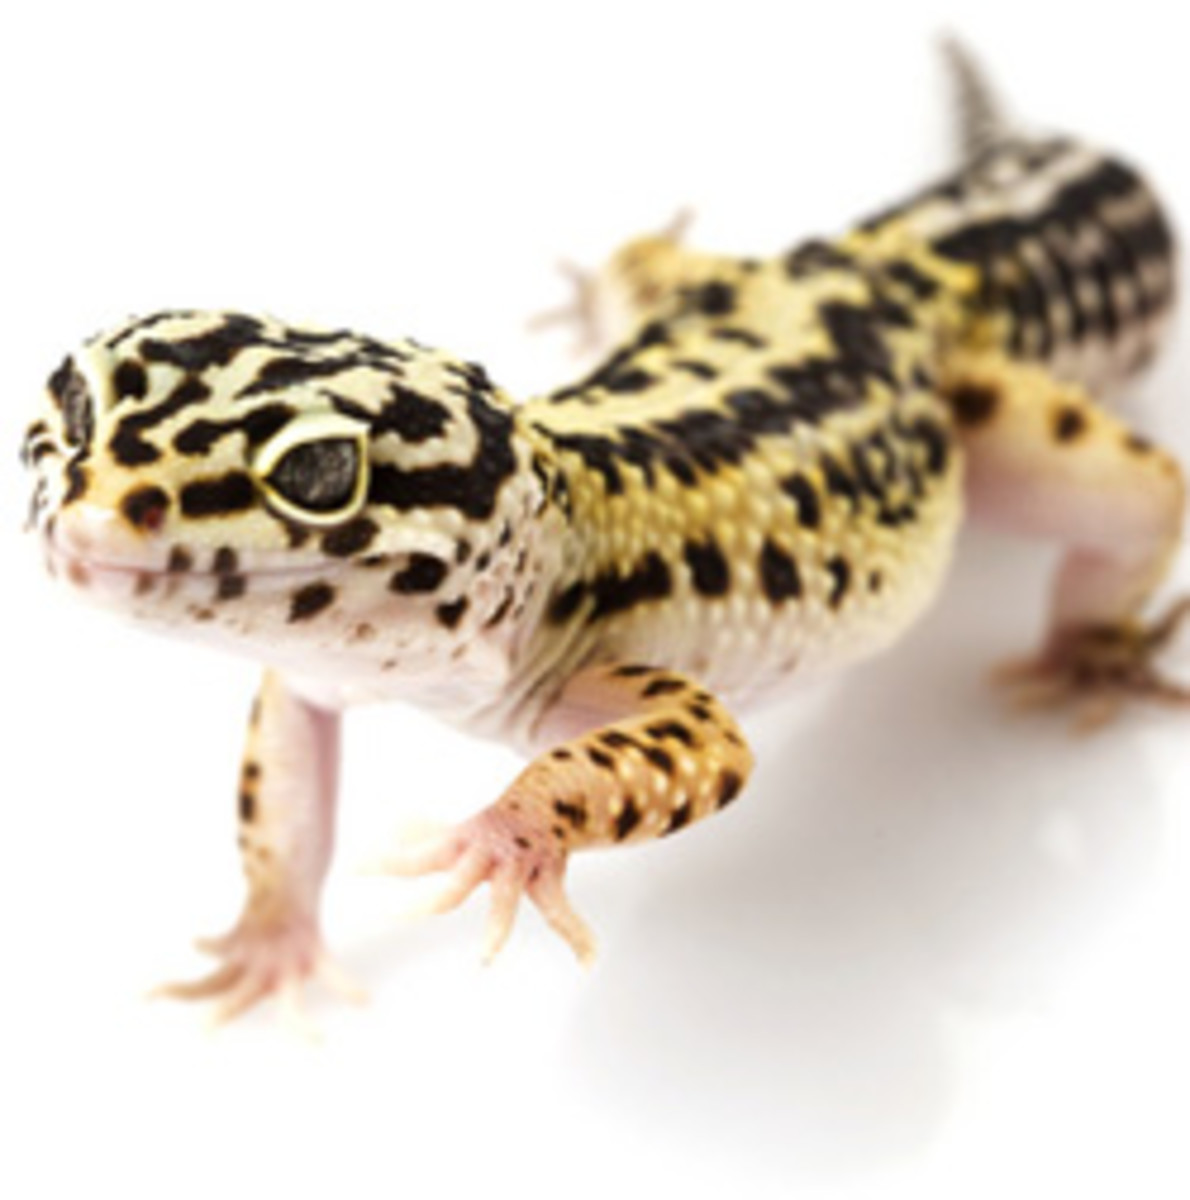 Leopard Gecko : Care Sheet & Helpful Information